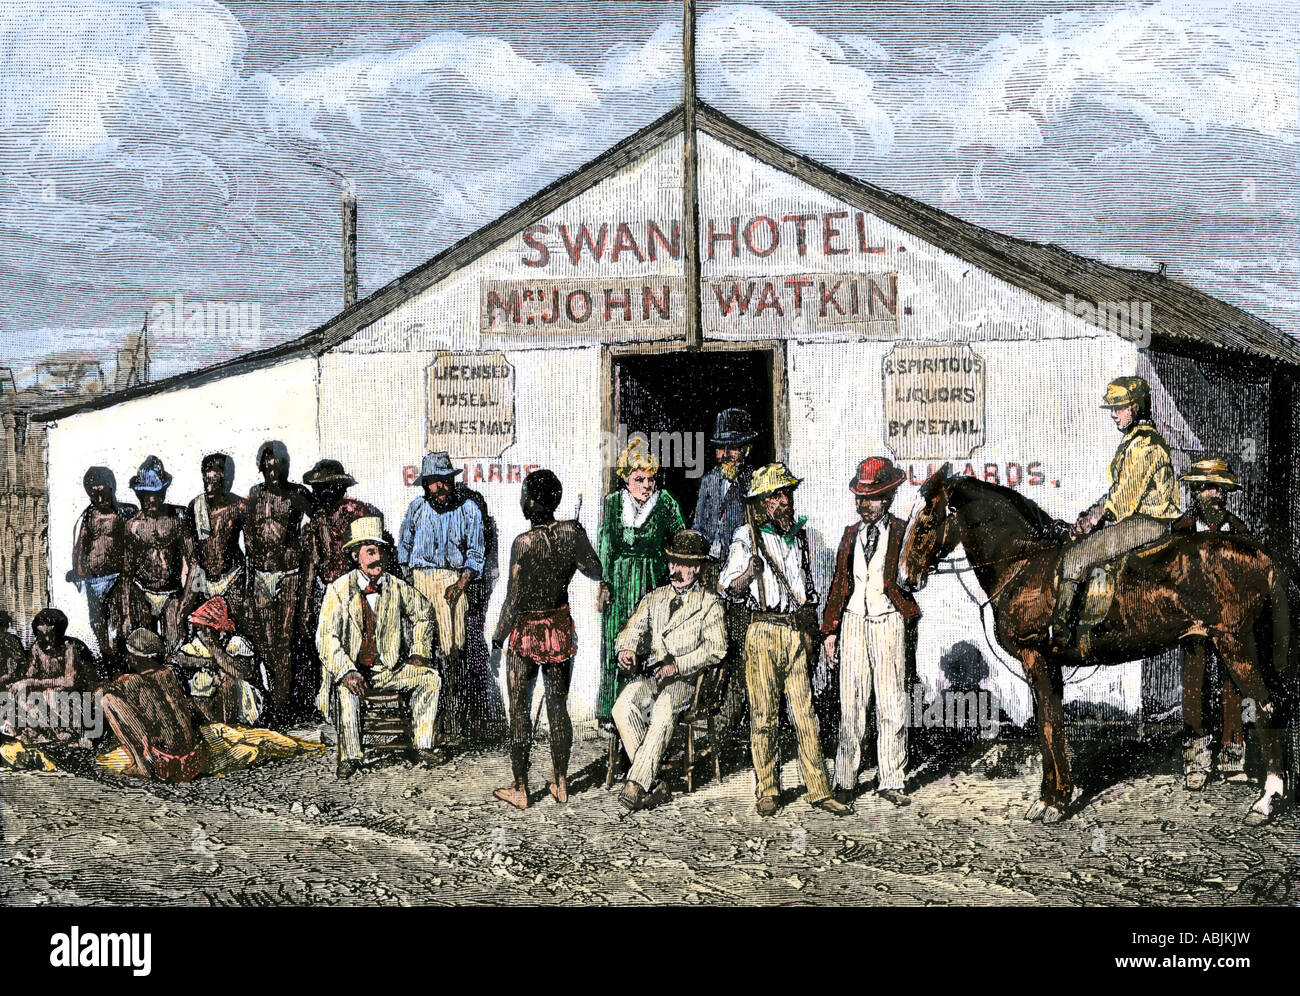 Hotel in the diamond mining region of South Africa 1870s. Hand-colored woodcut - Stock Image